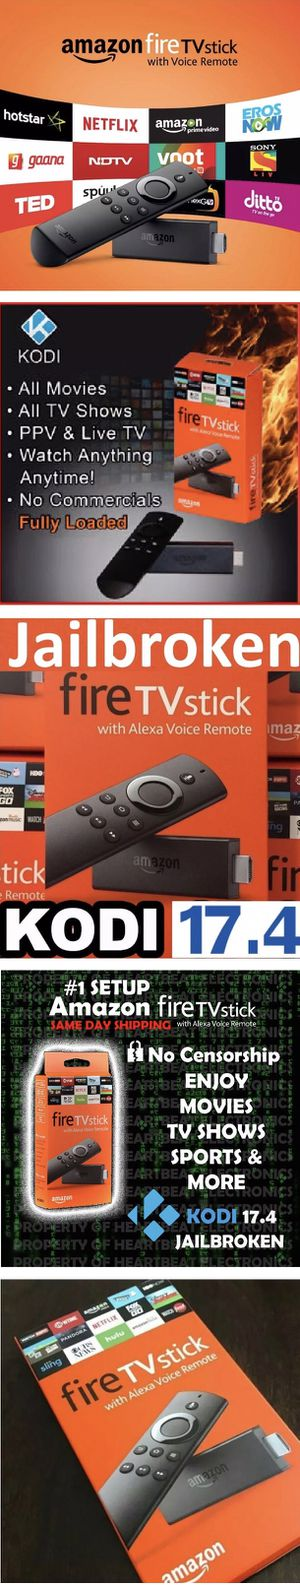 New Amazon fire tv stick firestick fully programmed with everything FREE! Android TV Box Killer! for Sale in Las Vegas, NV